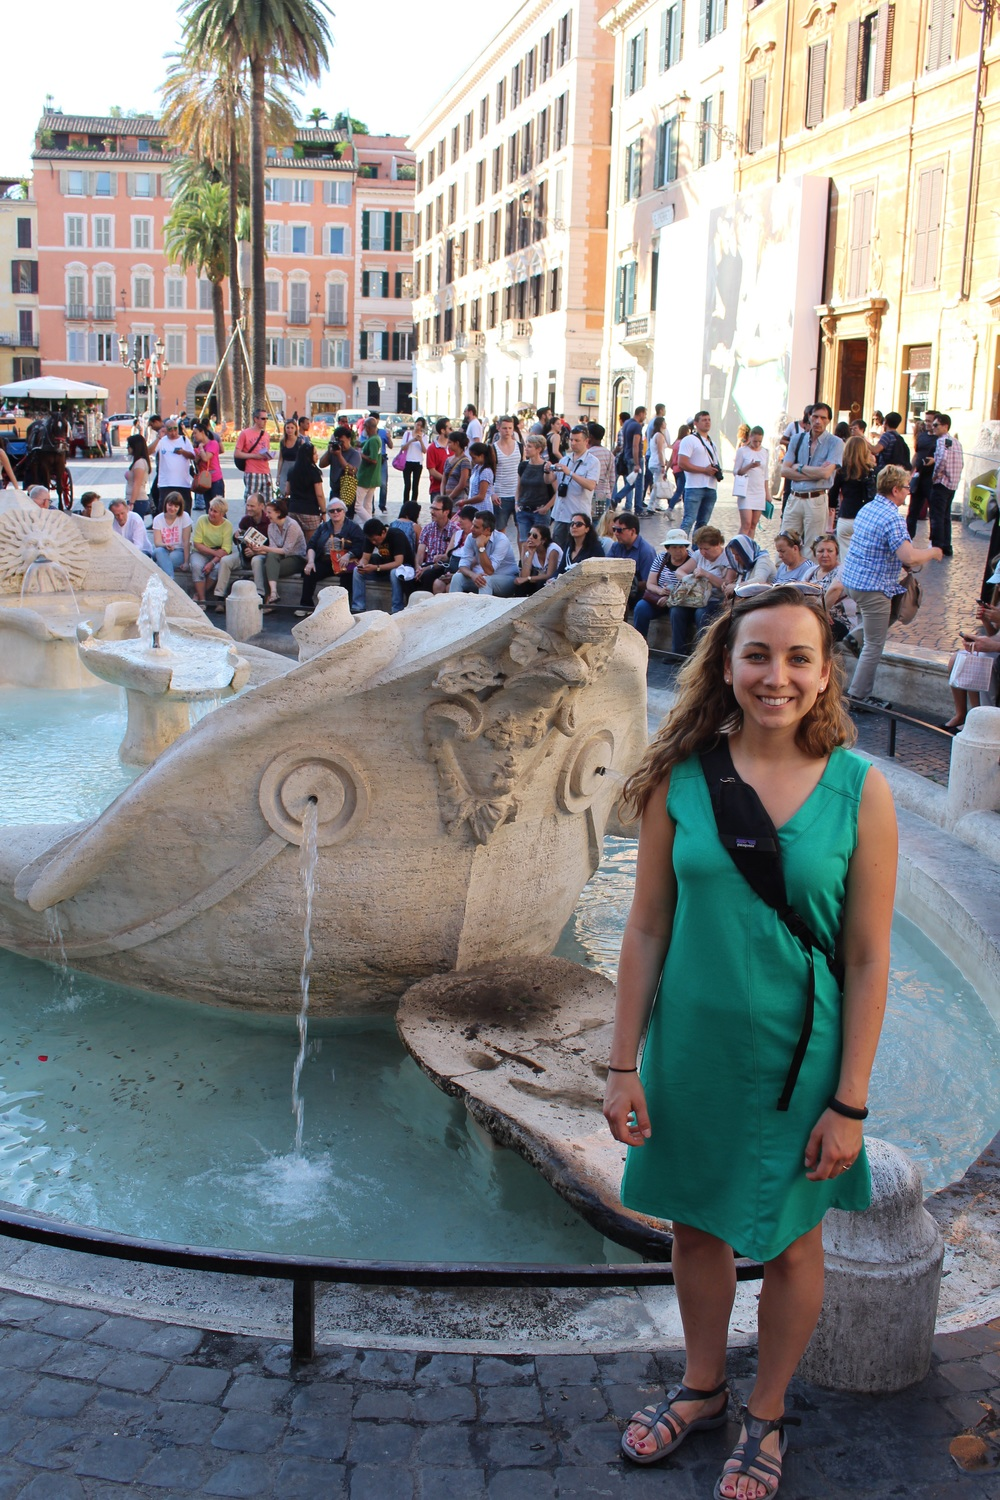 Fountain by the Spanish Steps